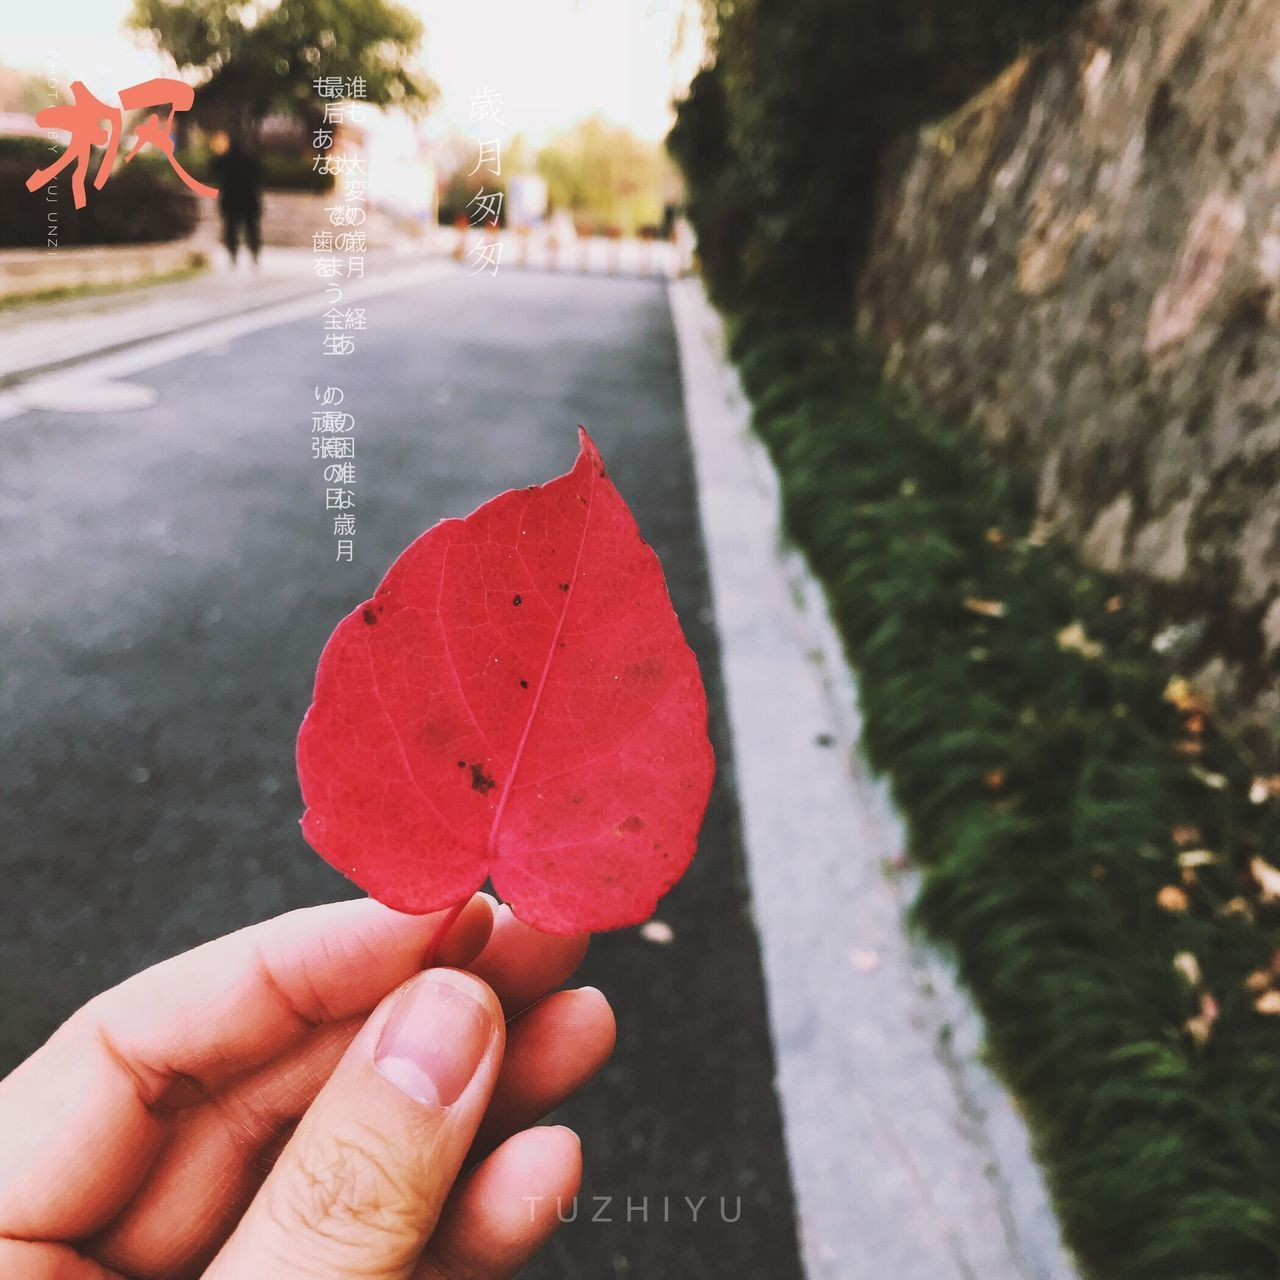 leaf, human hand, autumn, human body part, focus on foreground, one person, outdoors, real people, day, change, close-up, holding, nature, maple leaf, beauty in nature, tree, maple, people